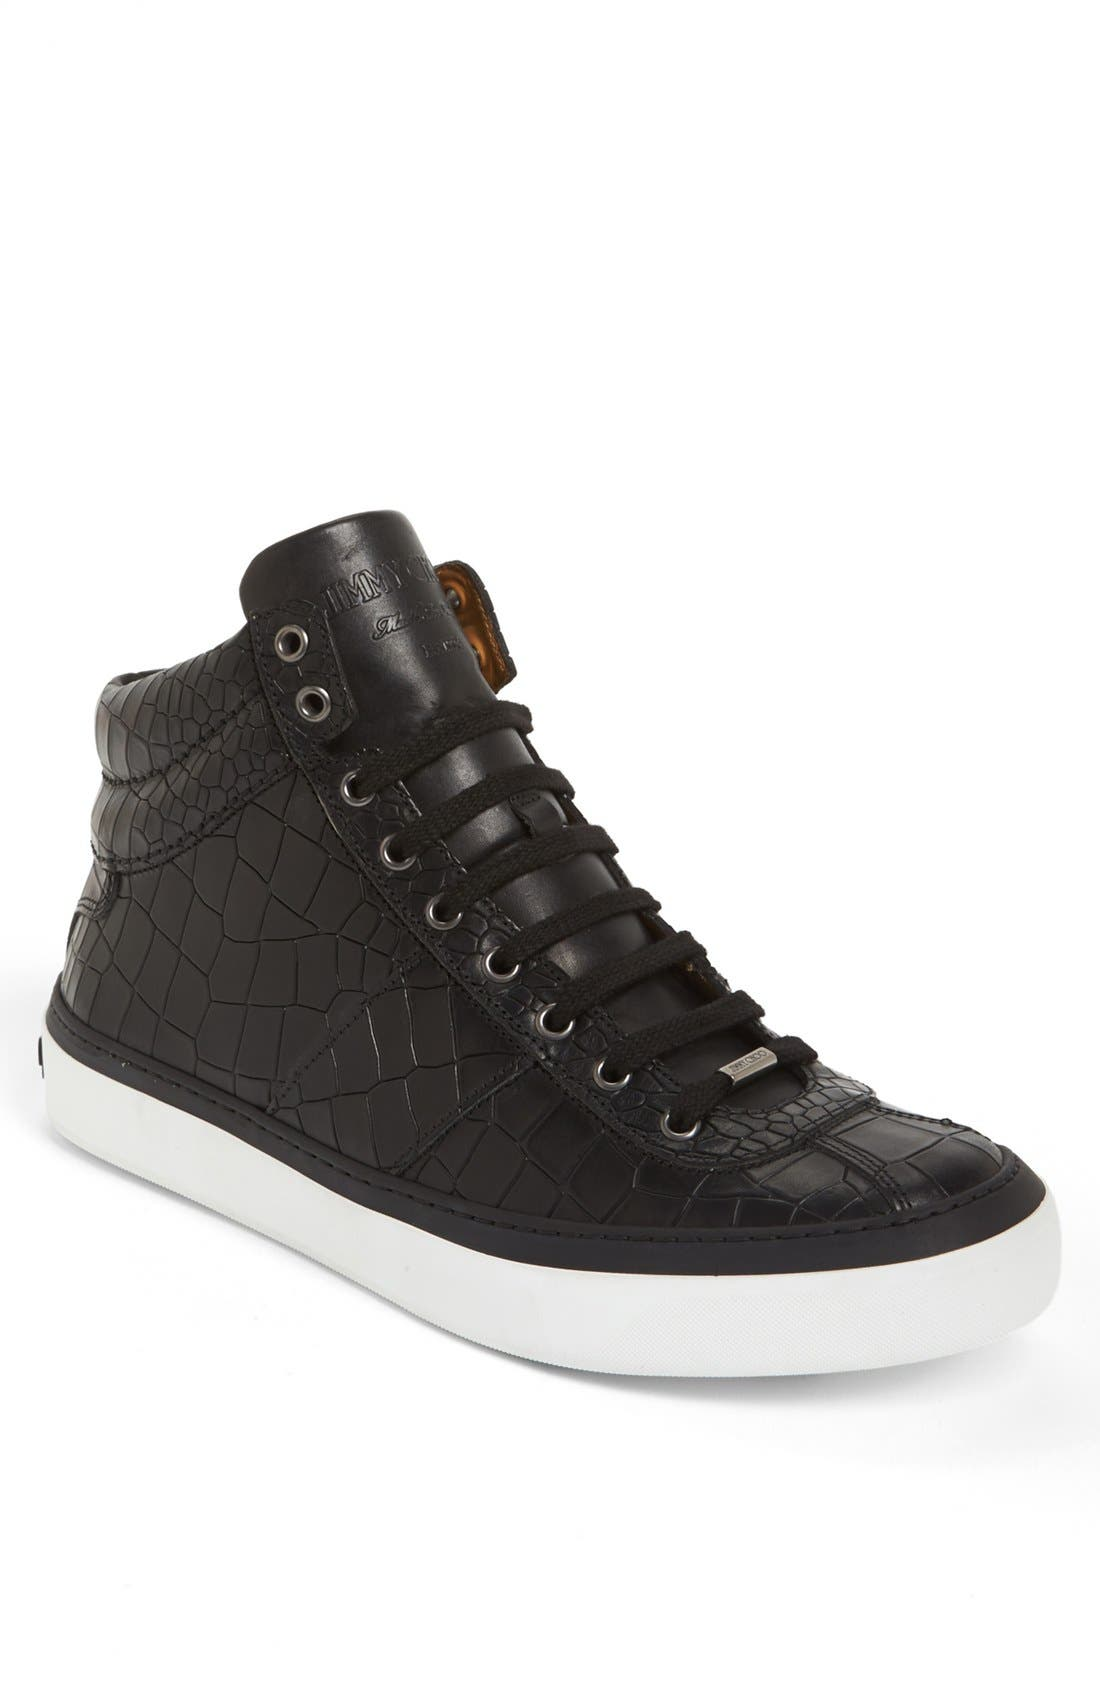 Belgravia High Top Sneaker,                             Main thumbnail 1, color,